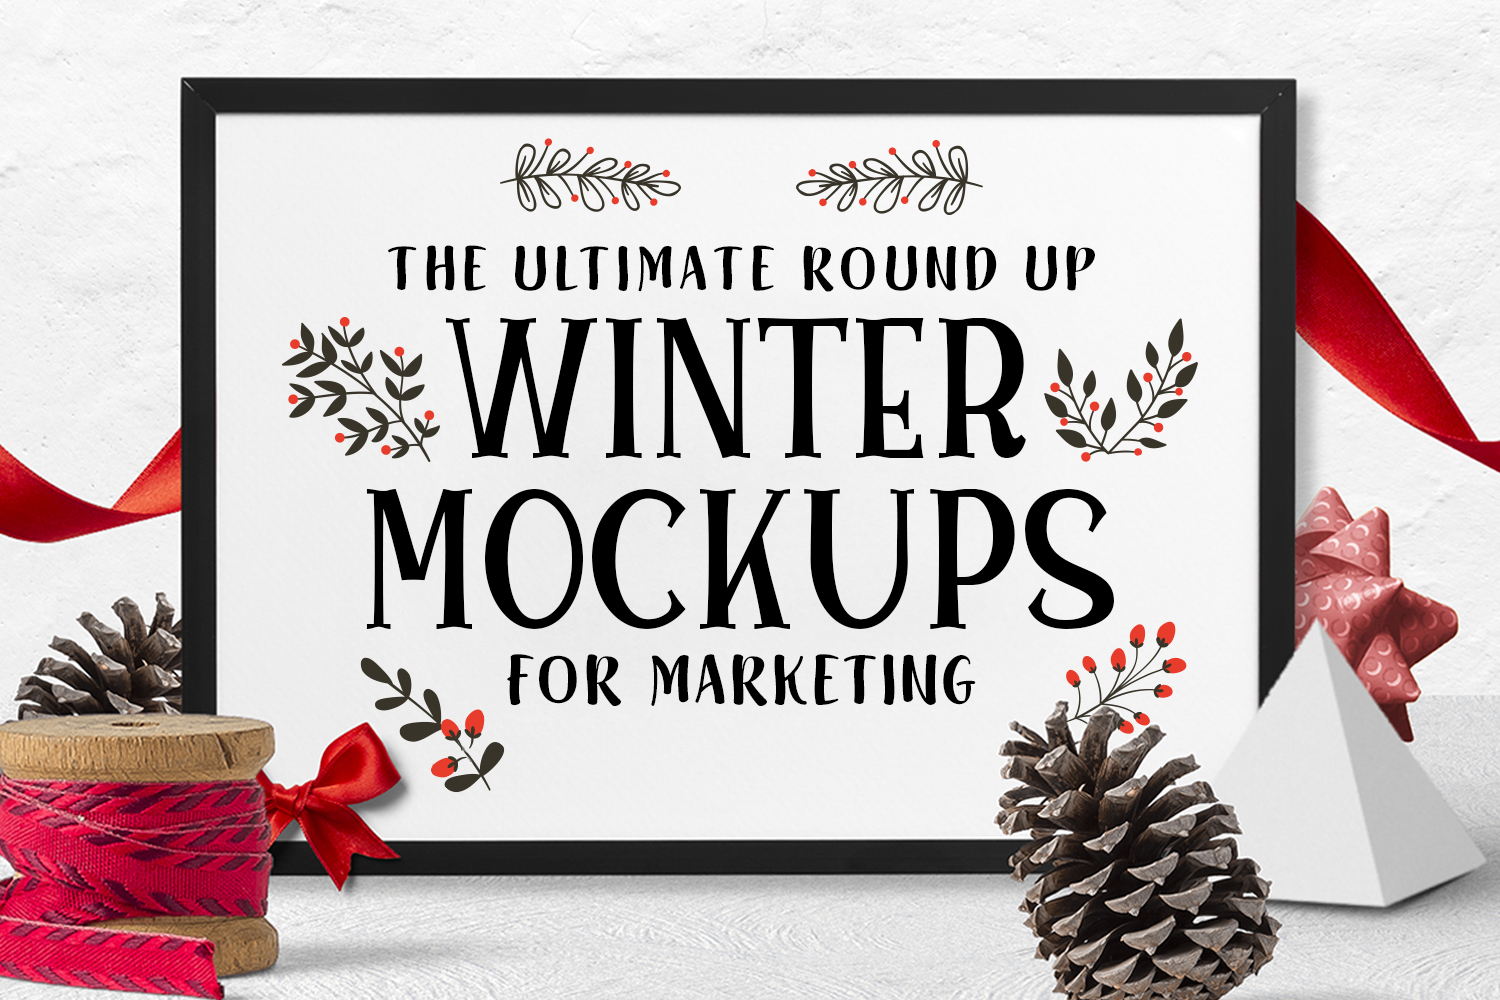 The Ultimate Round up of Winter Mockups for Marketing